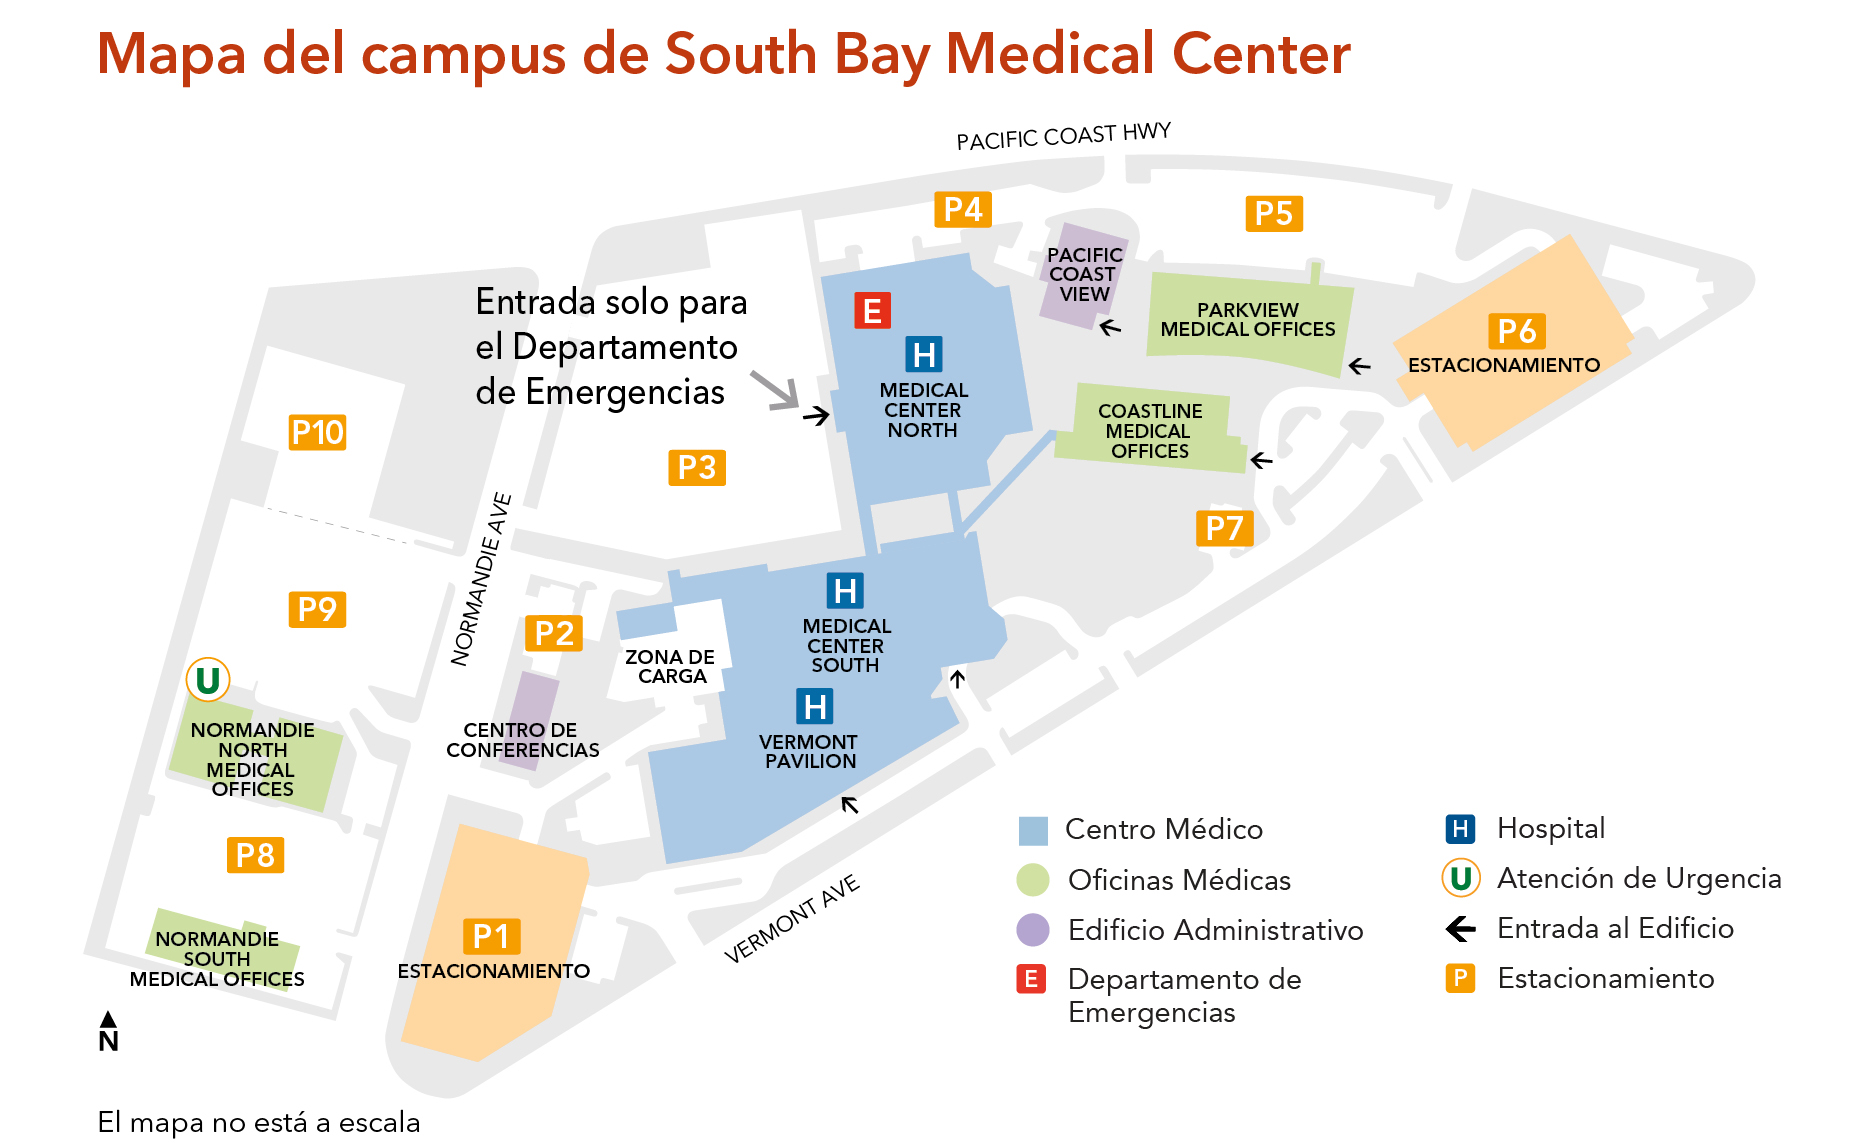 South Bay Medical Center | Kaiser Permanente on marshall hospital map, stanford hospital map, miller county hospital map, cosumnes river college map, anderson hospital map, contra costa college map, franklin hospital map, mission hospital map, walmart map, davis hospital map, el camino hospital map, doctors medical center map, butler hospital map, safeway map, mission san diego de alcala map, bank of america map, whole foods map, good samaritan hospital map, san joaquin delta college map, genentech map,